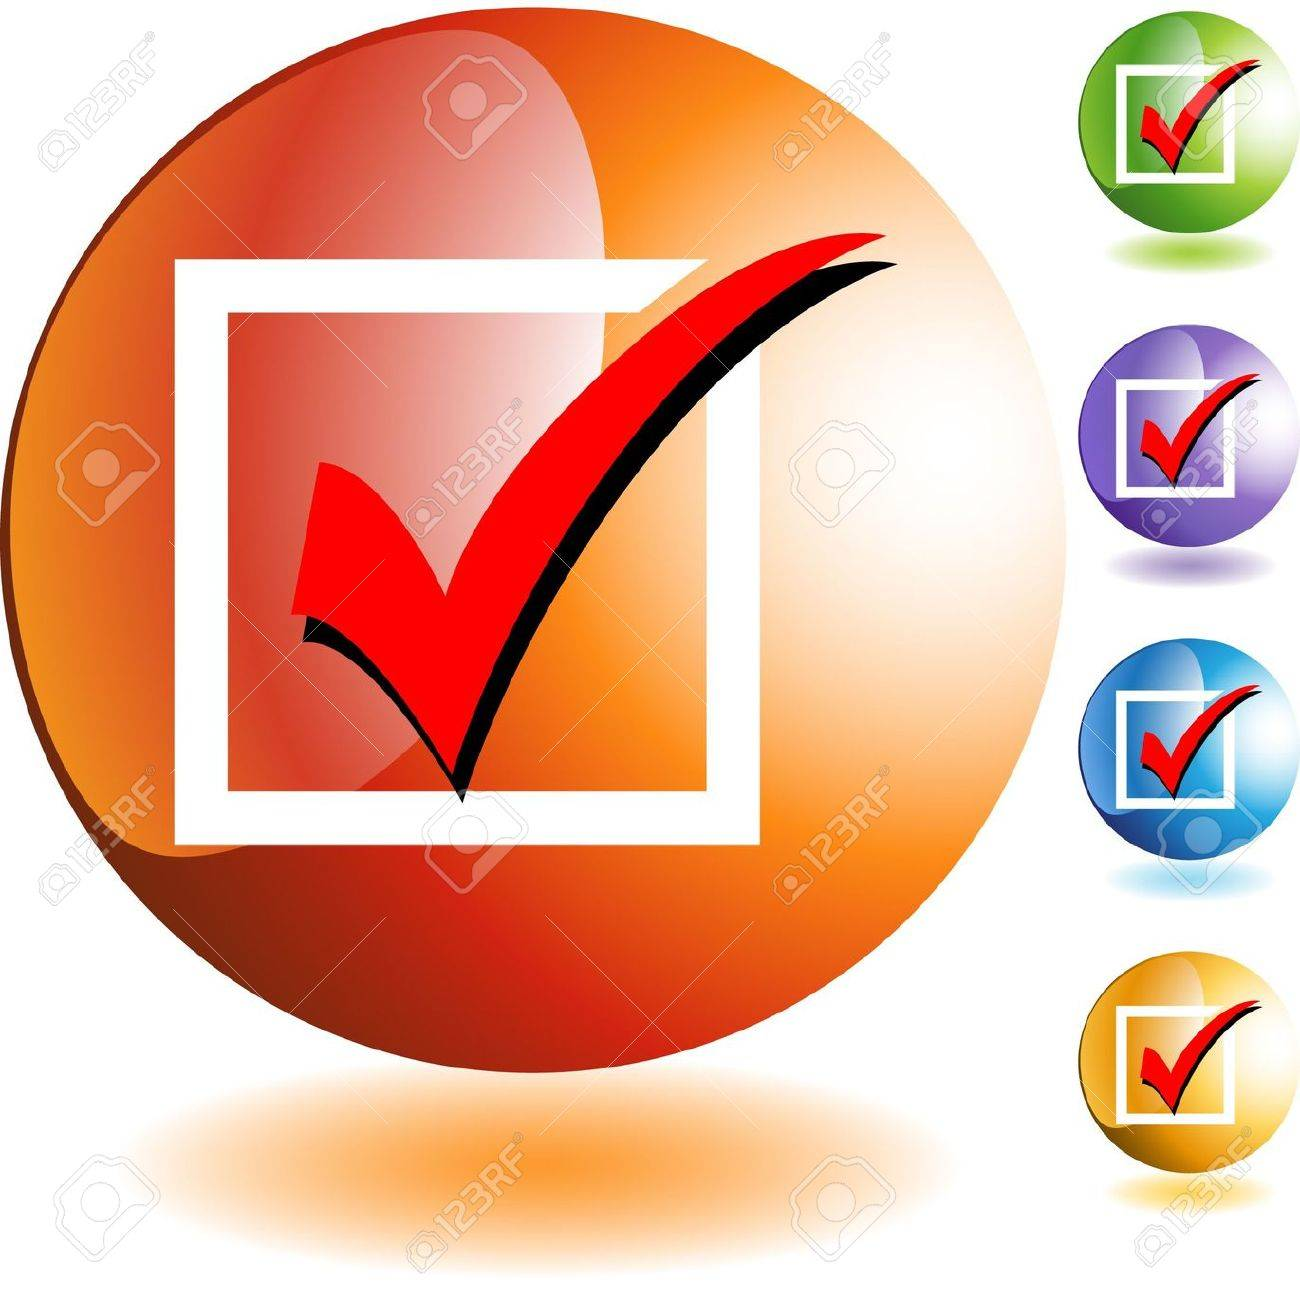 Checklist web button isolated on a background Stock Vector - 6649093